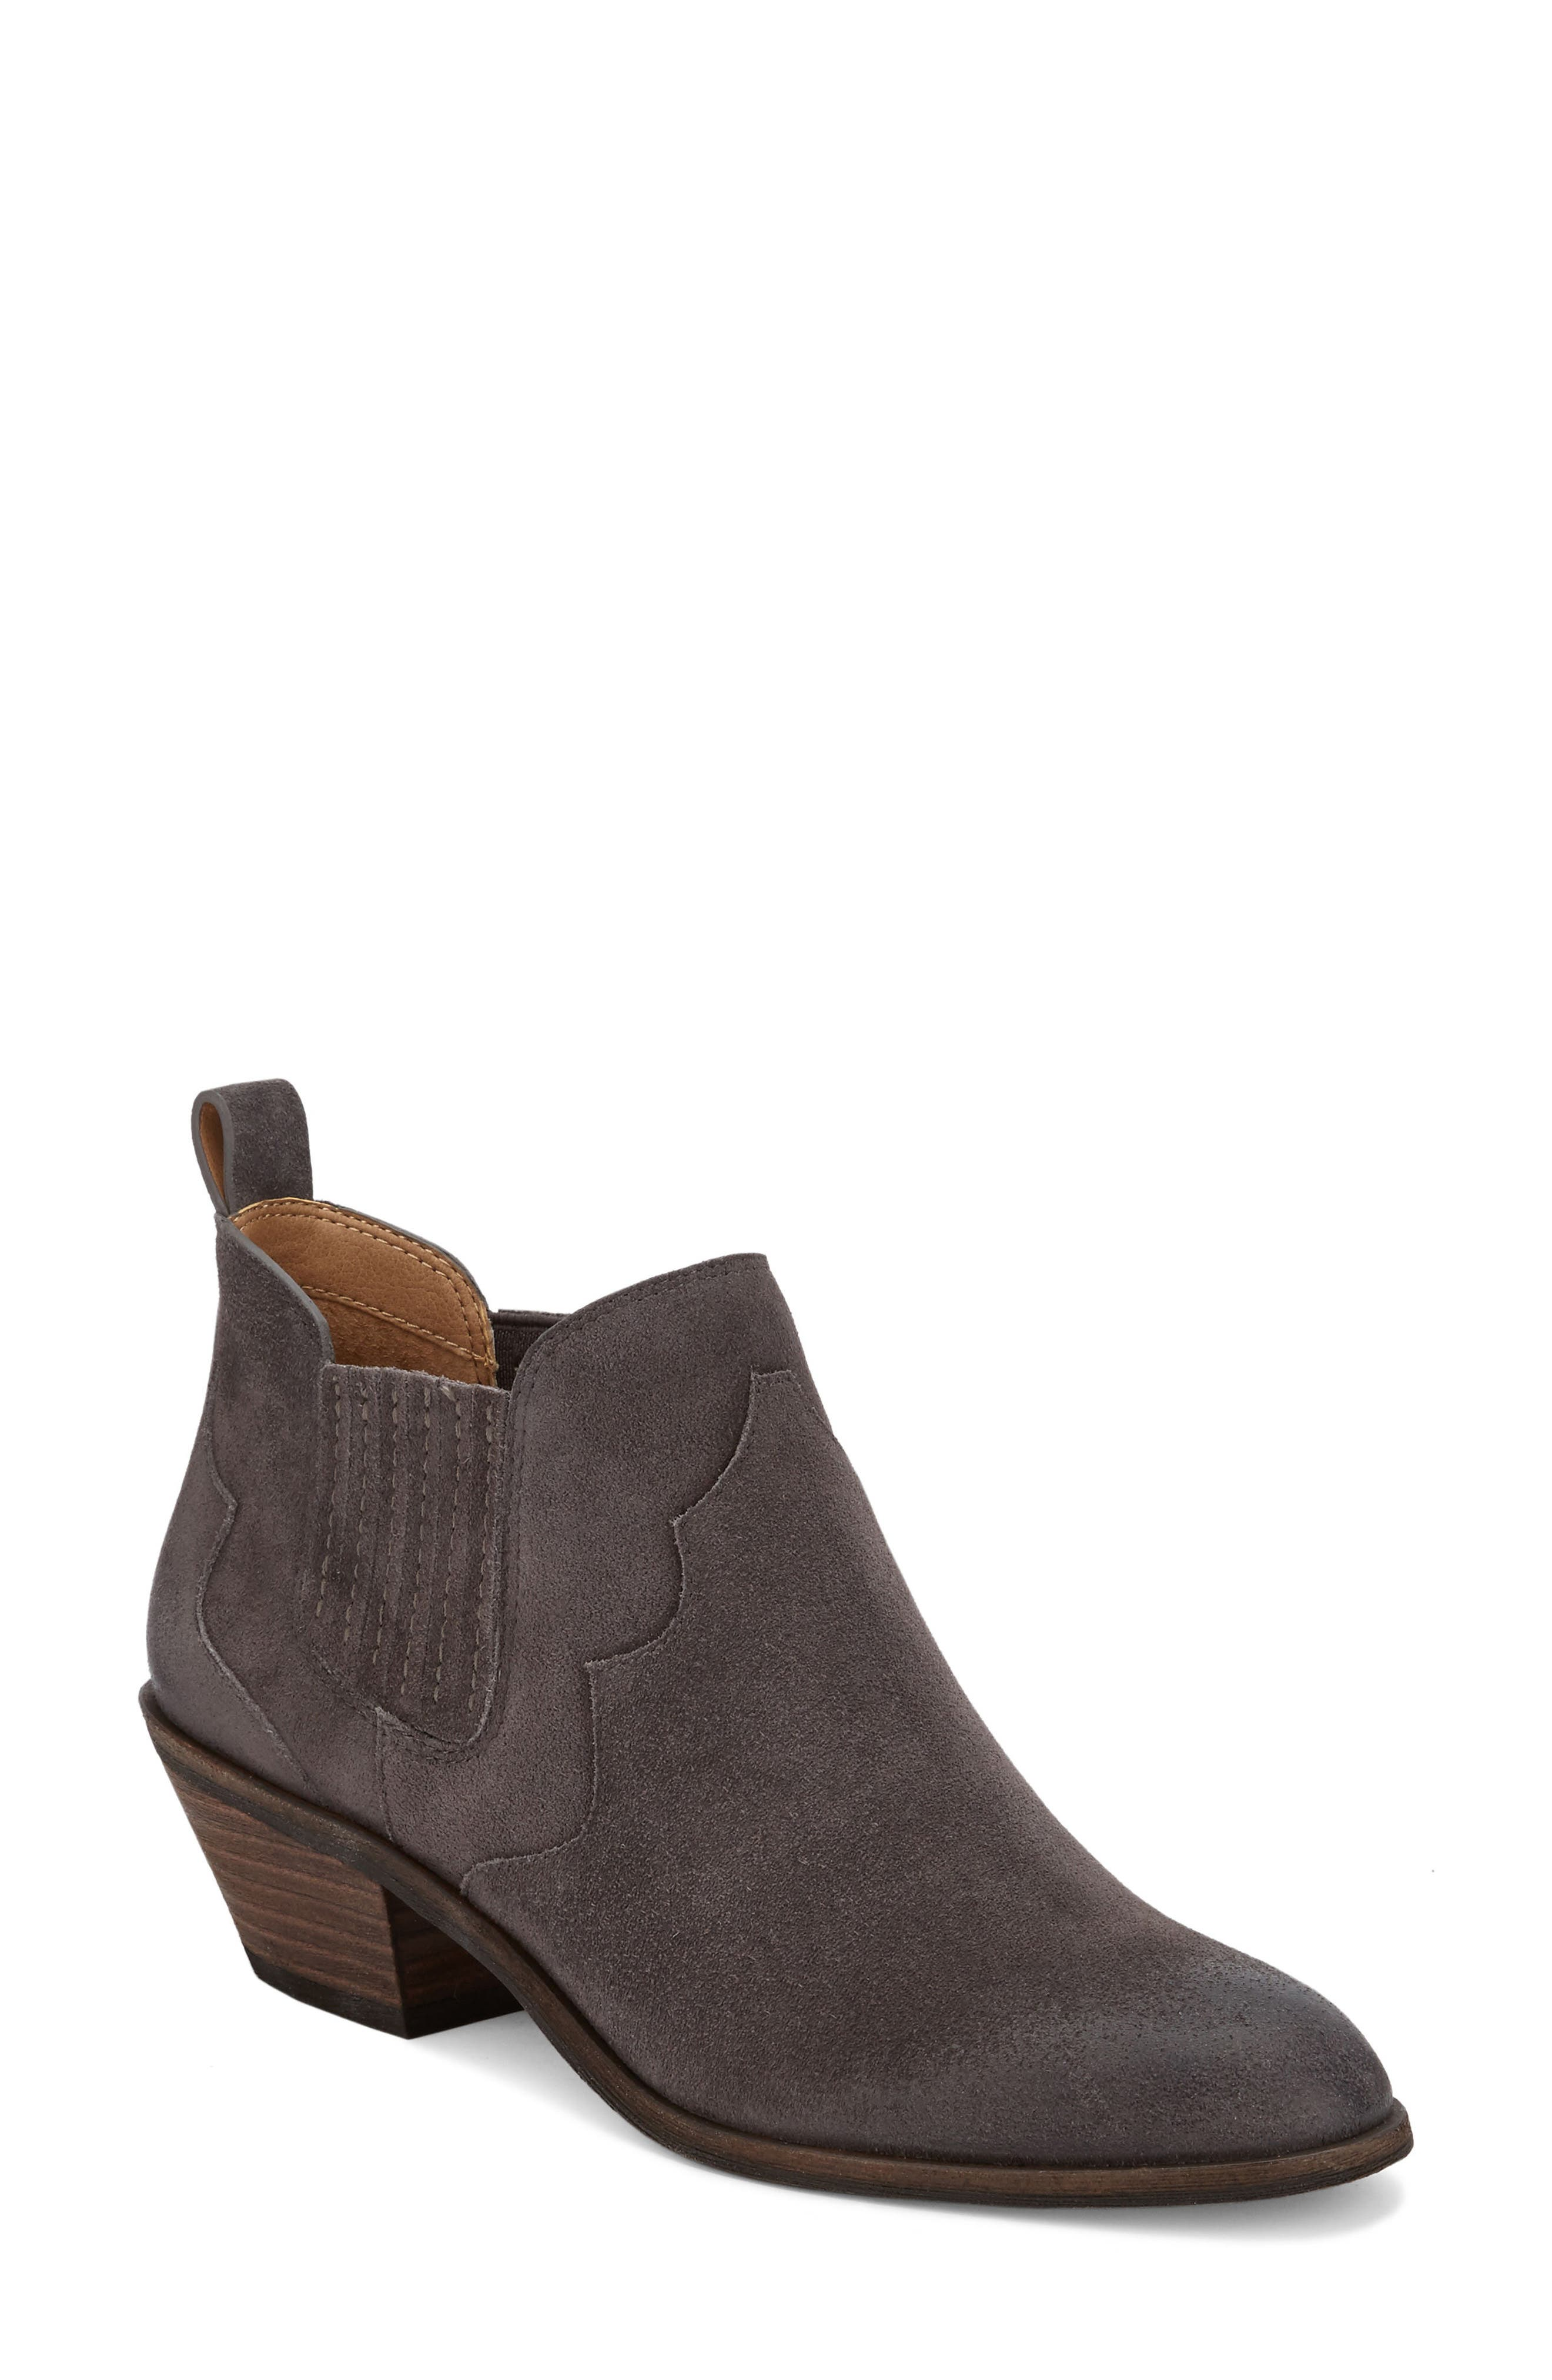 Naomi Bootie,                             Main thumbnail 1, color,                             Charcoal Suede